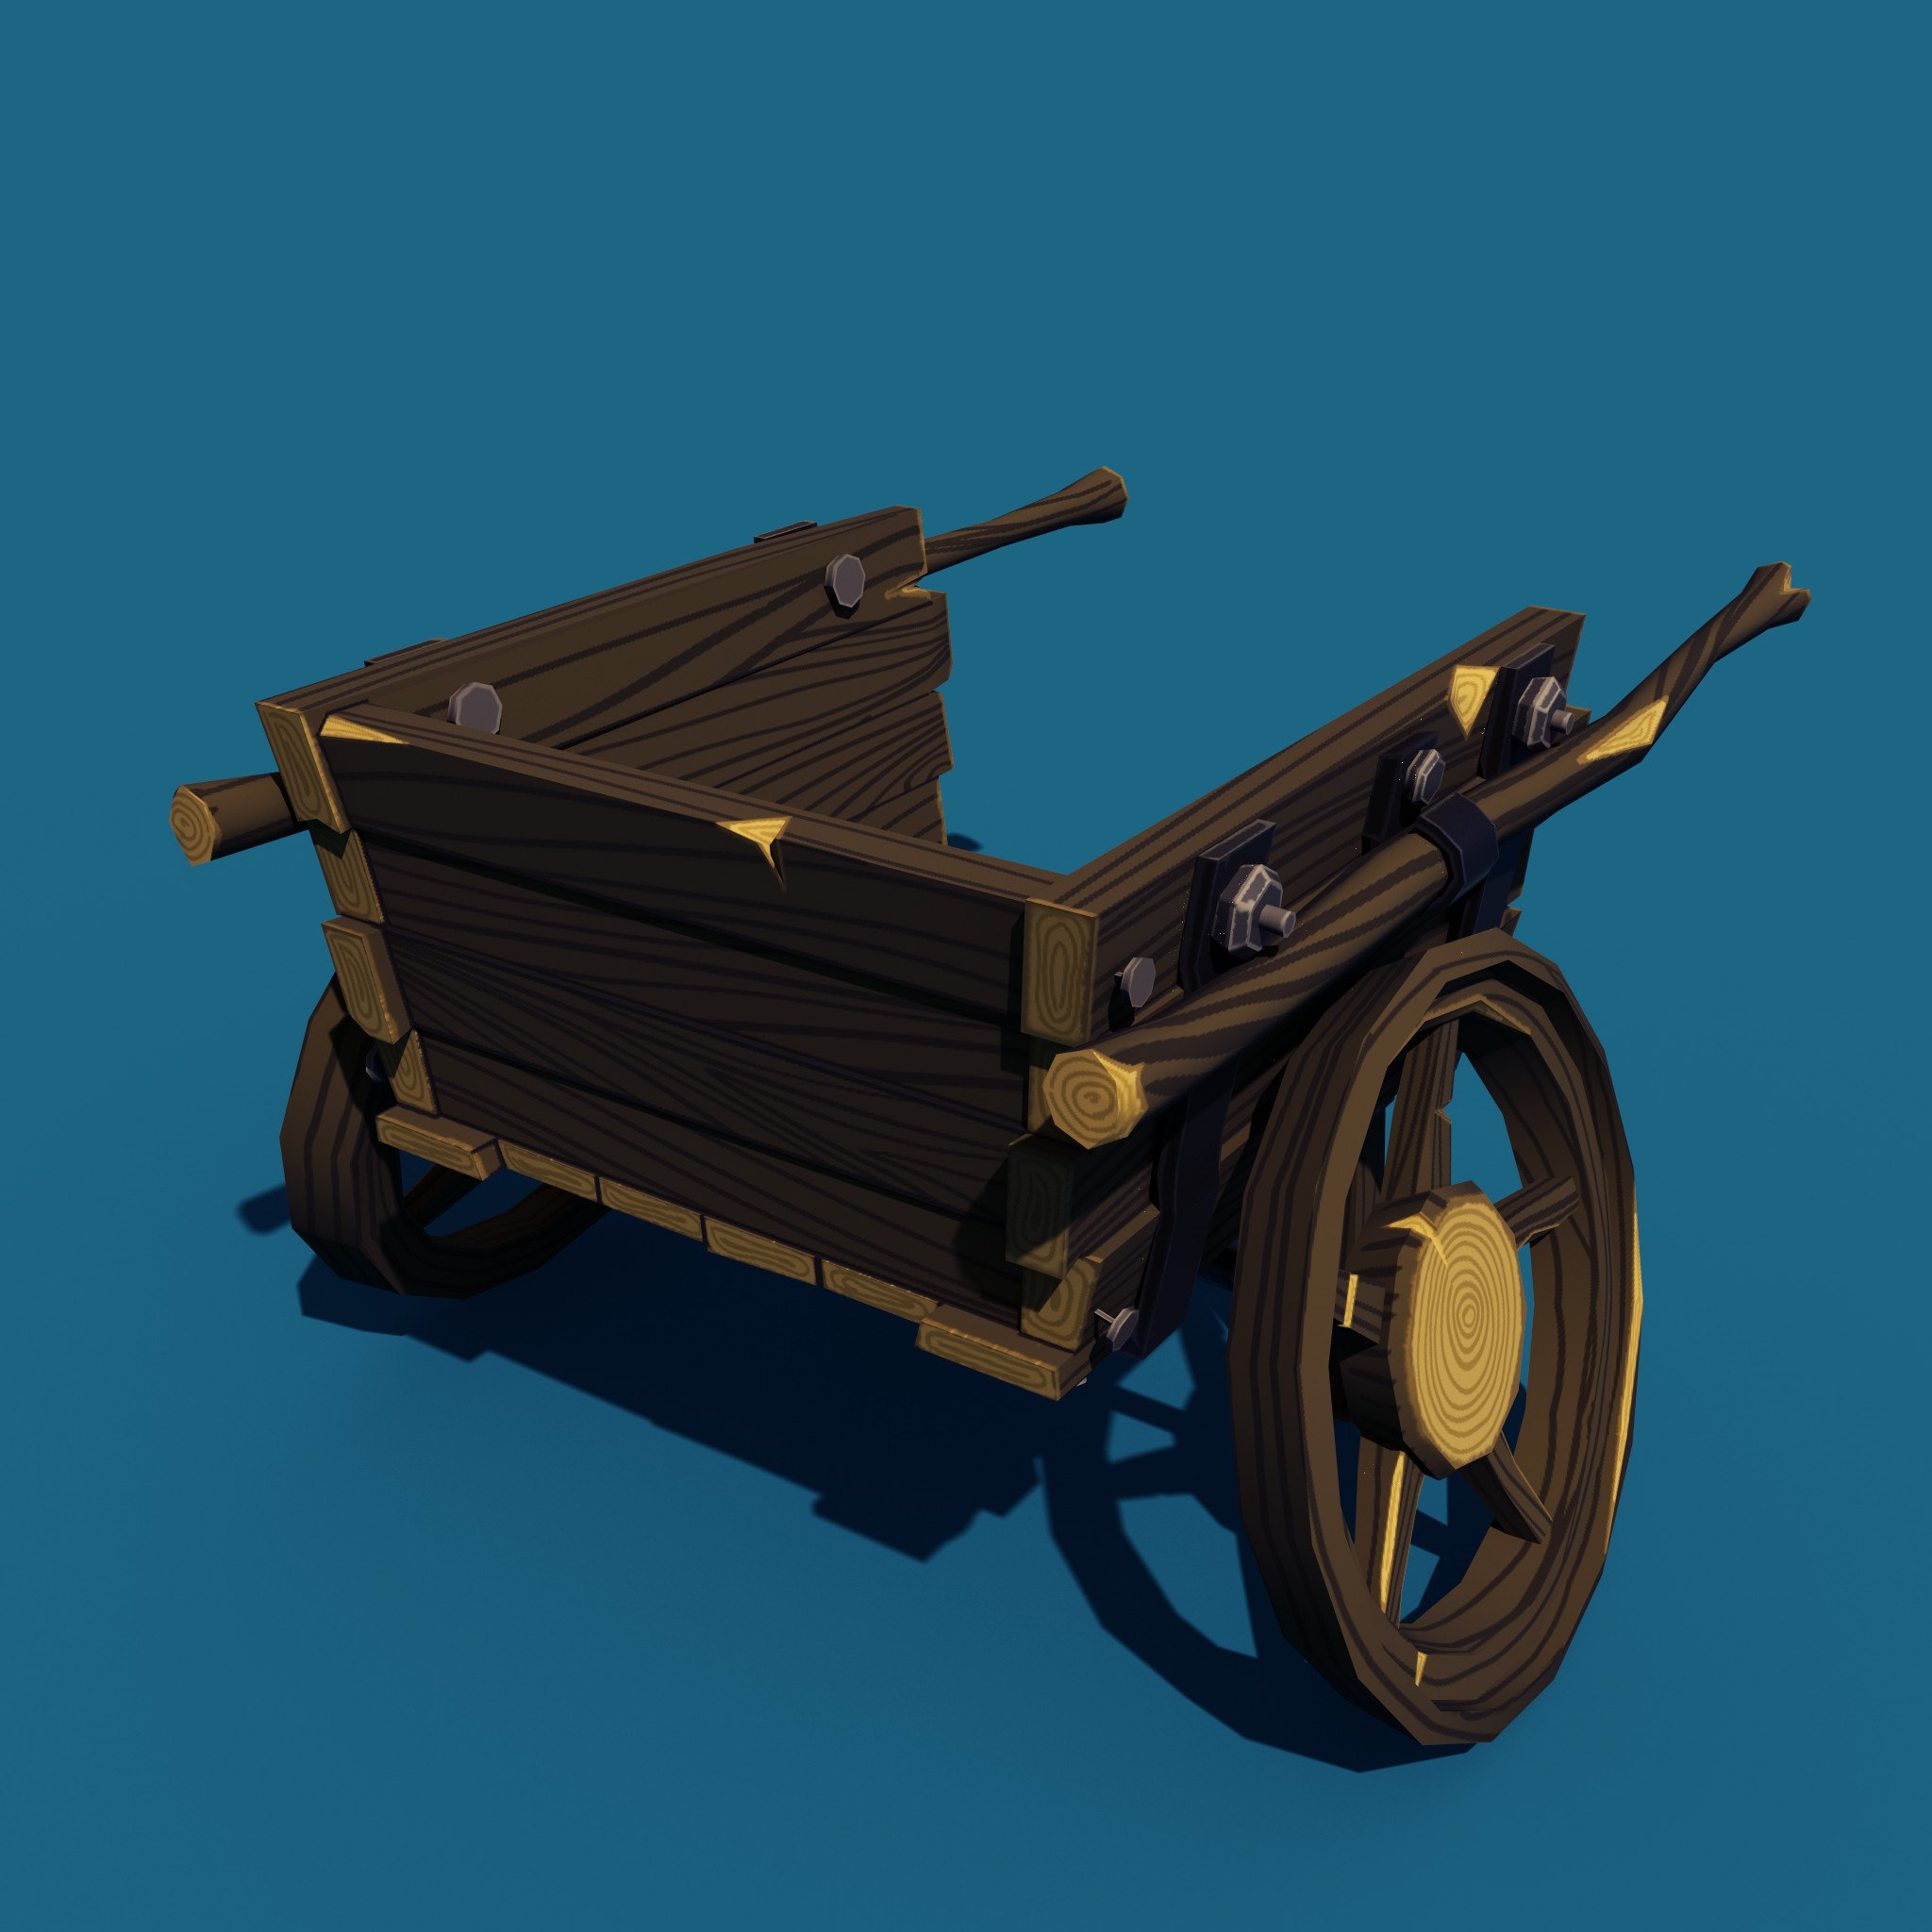 SmallCart_Back.jpg